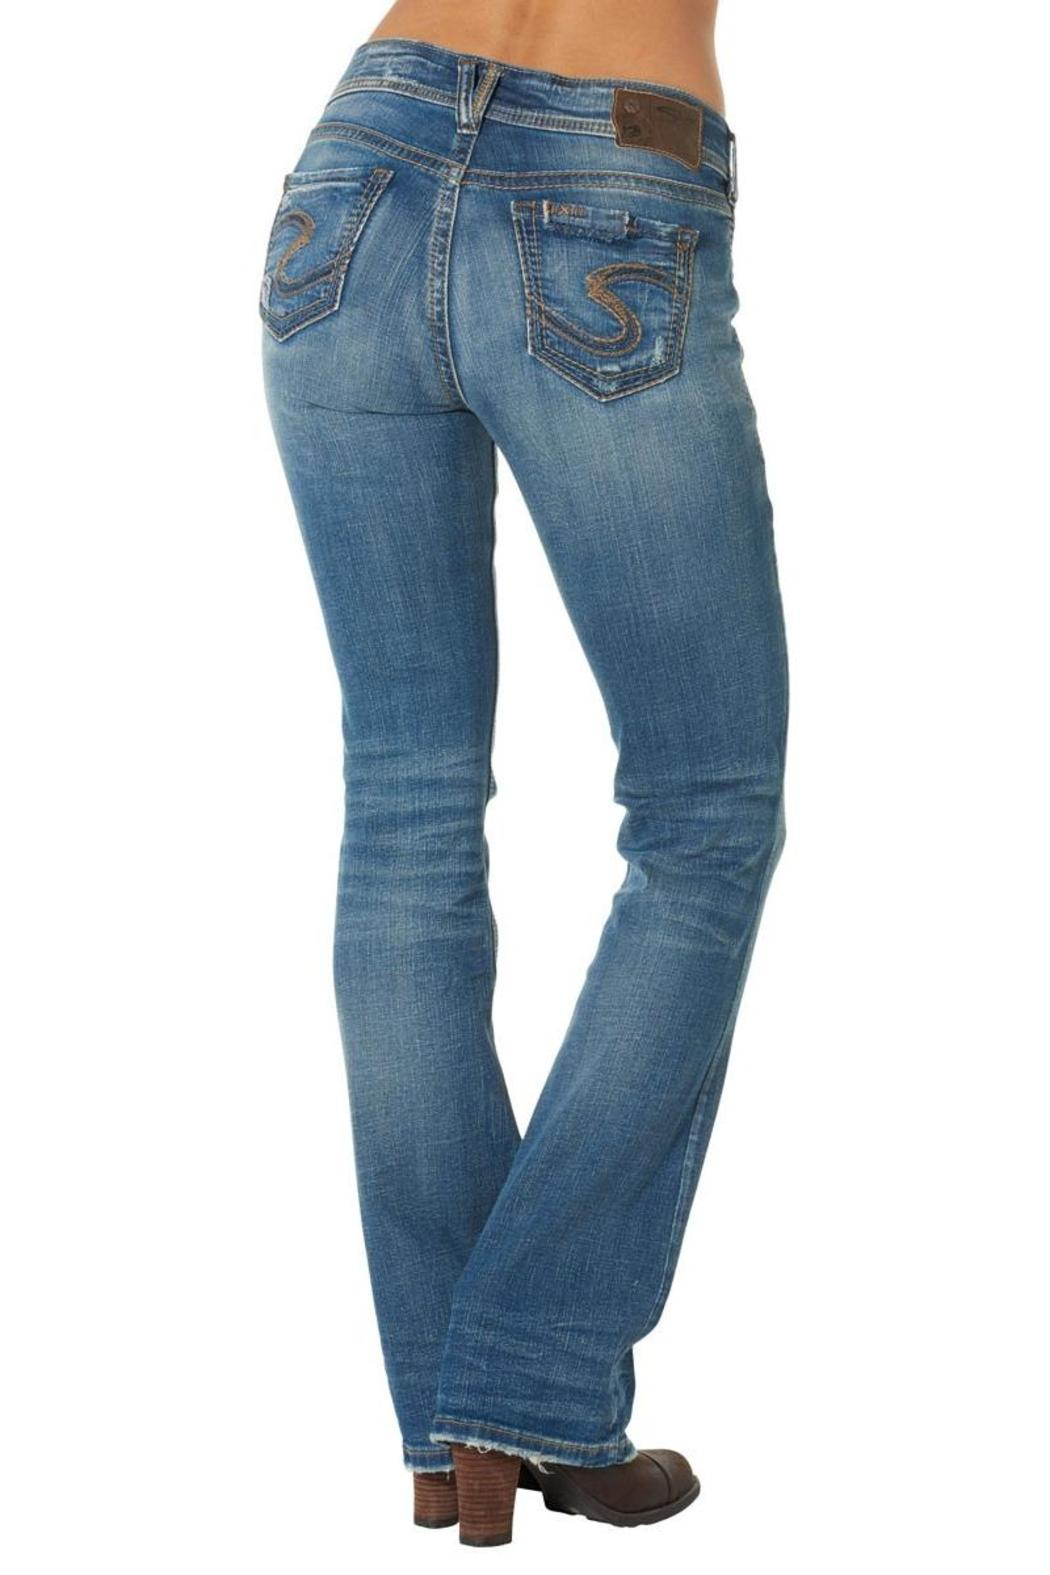 Silver Jeans Co. Suki Distressed-Bootcut - Front Full Image